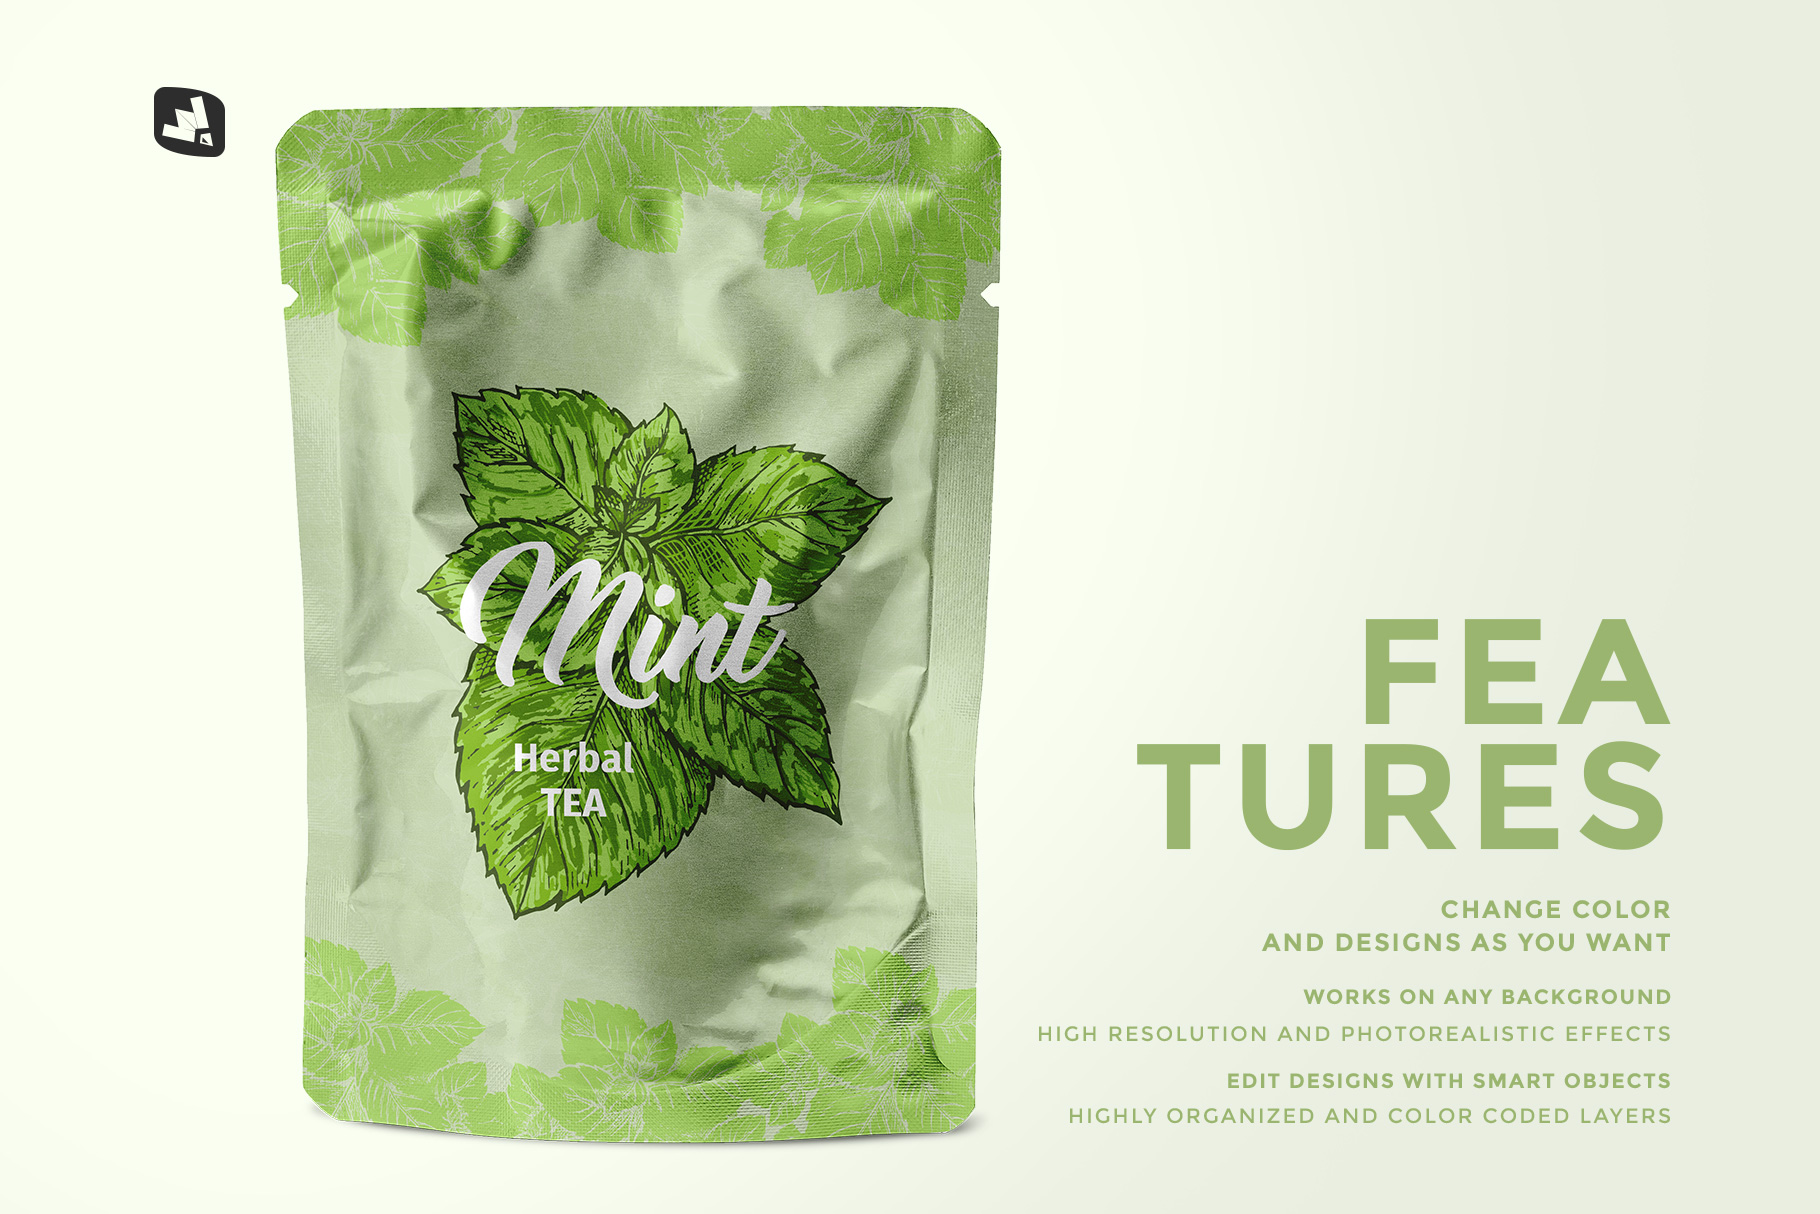 features of the flexible foil pouch packaging mockup